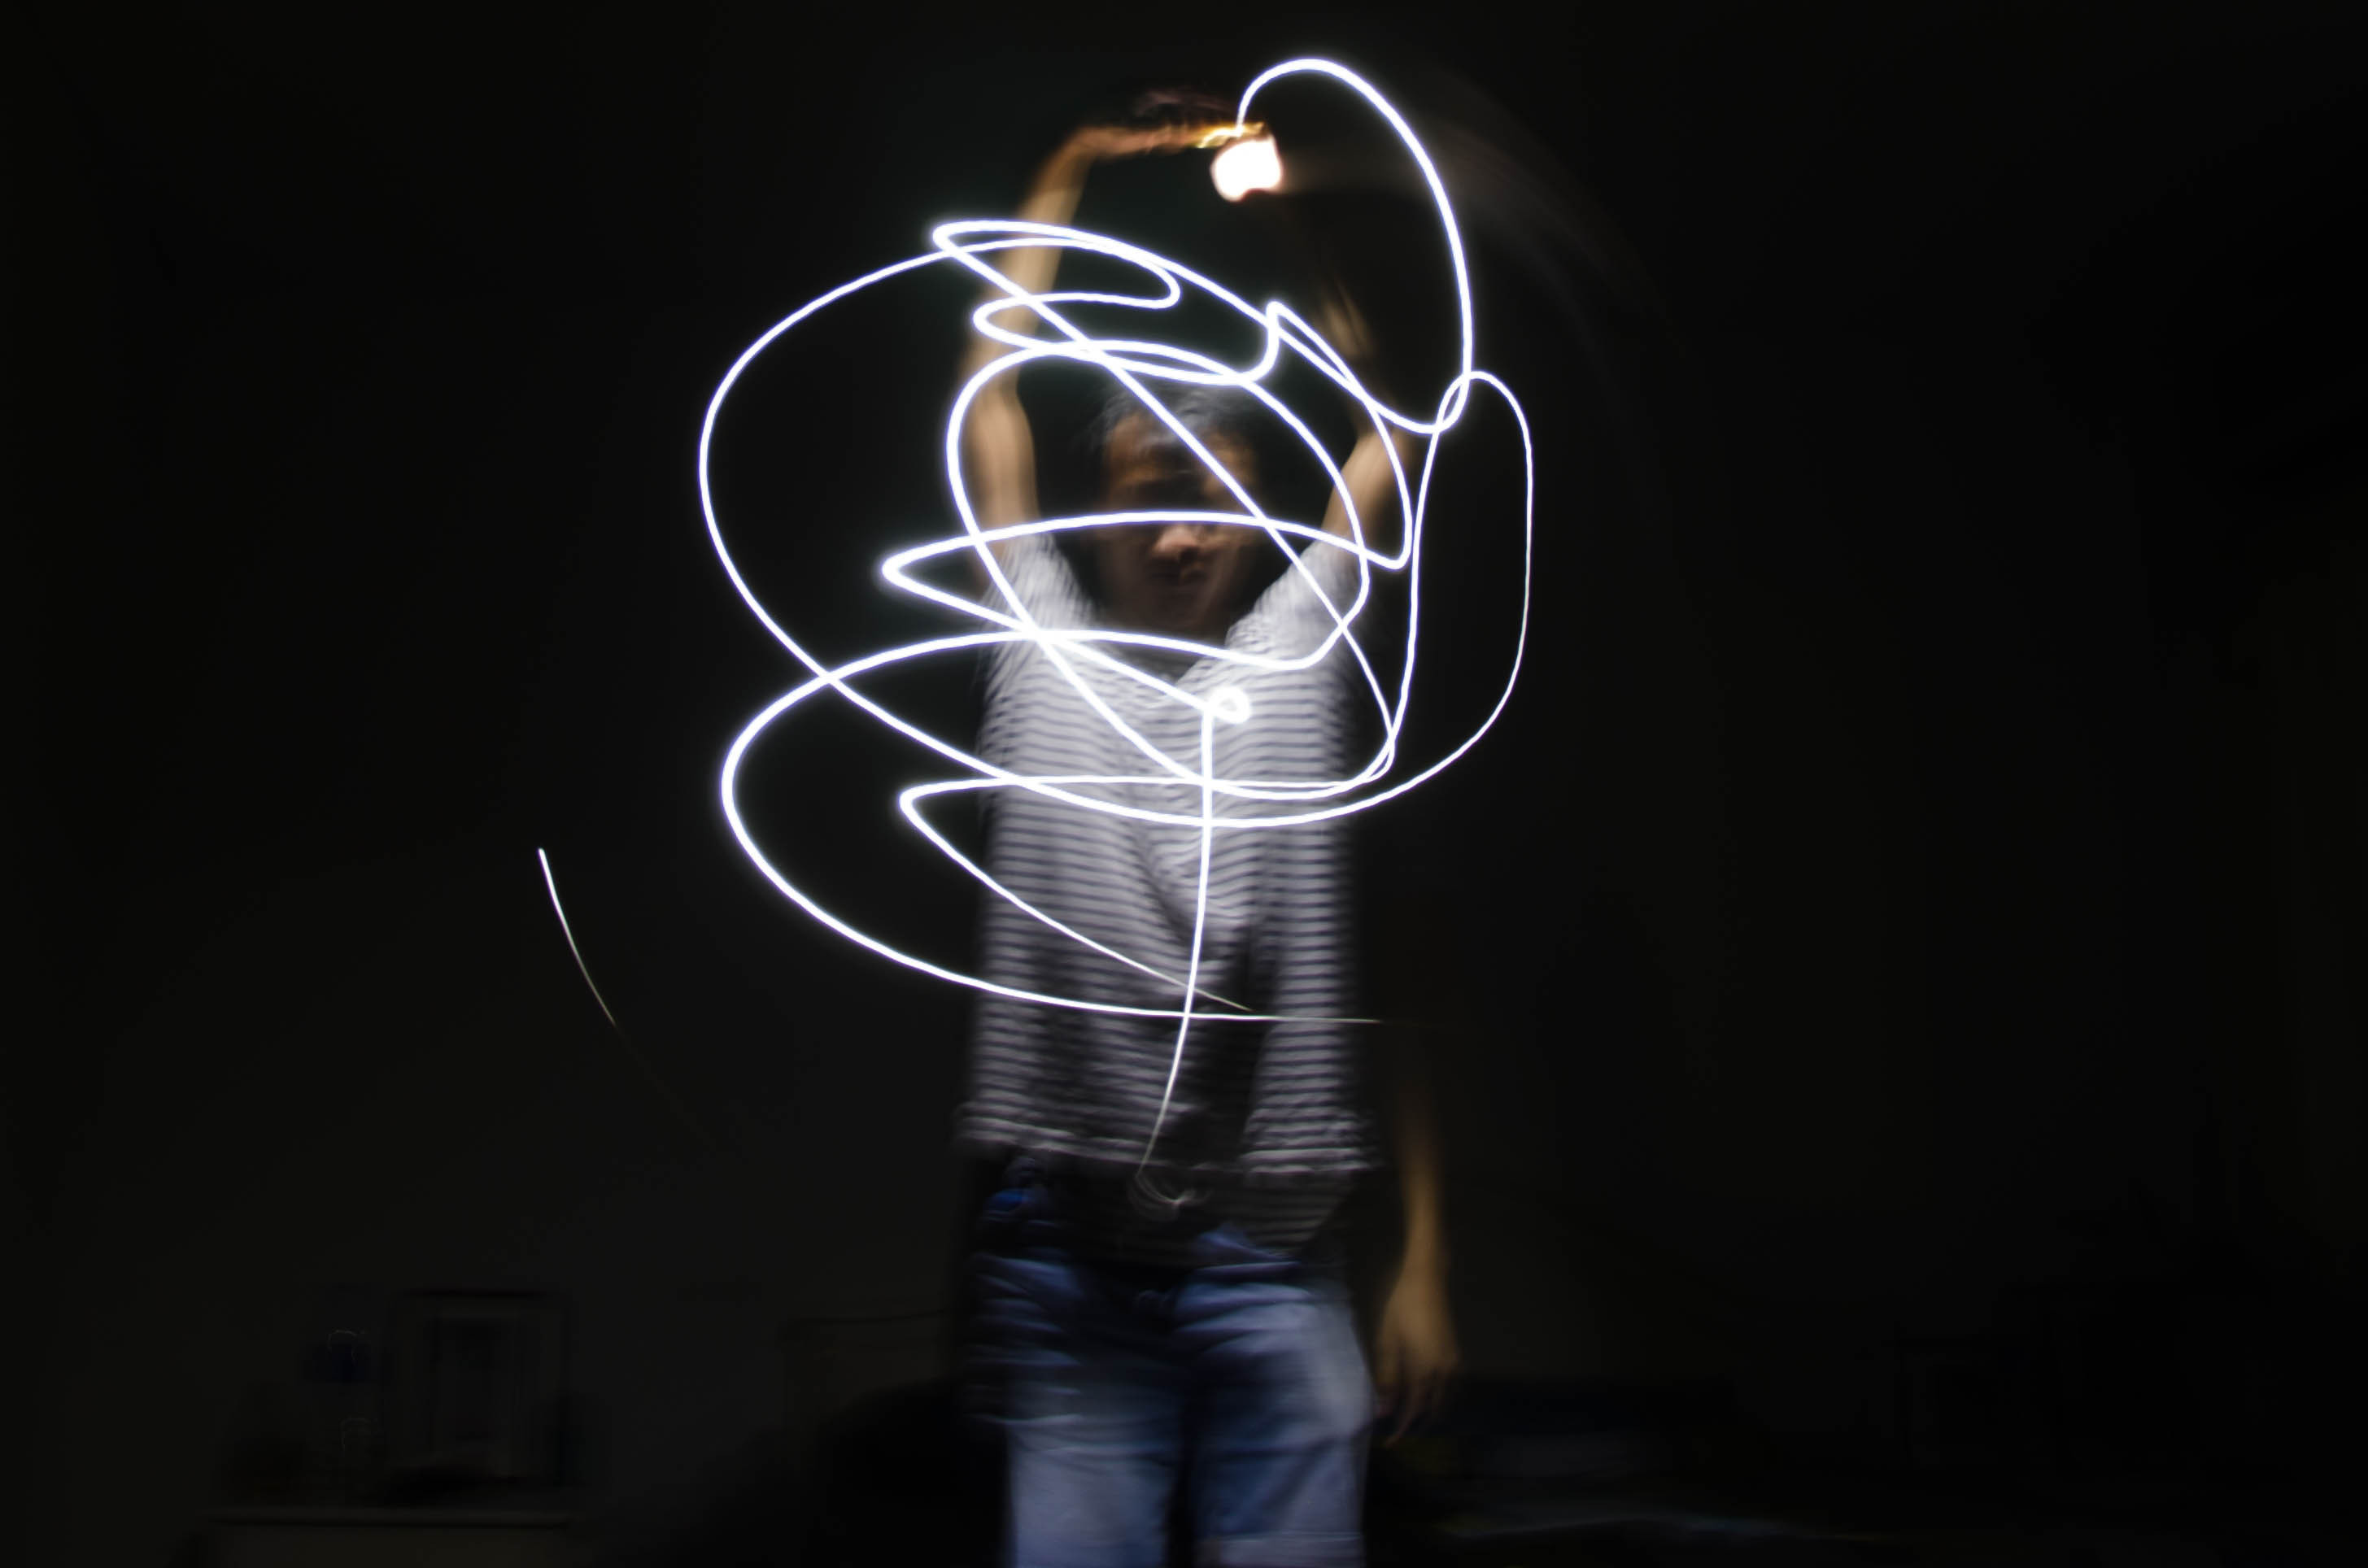 Fotografía de Light painting